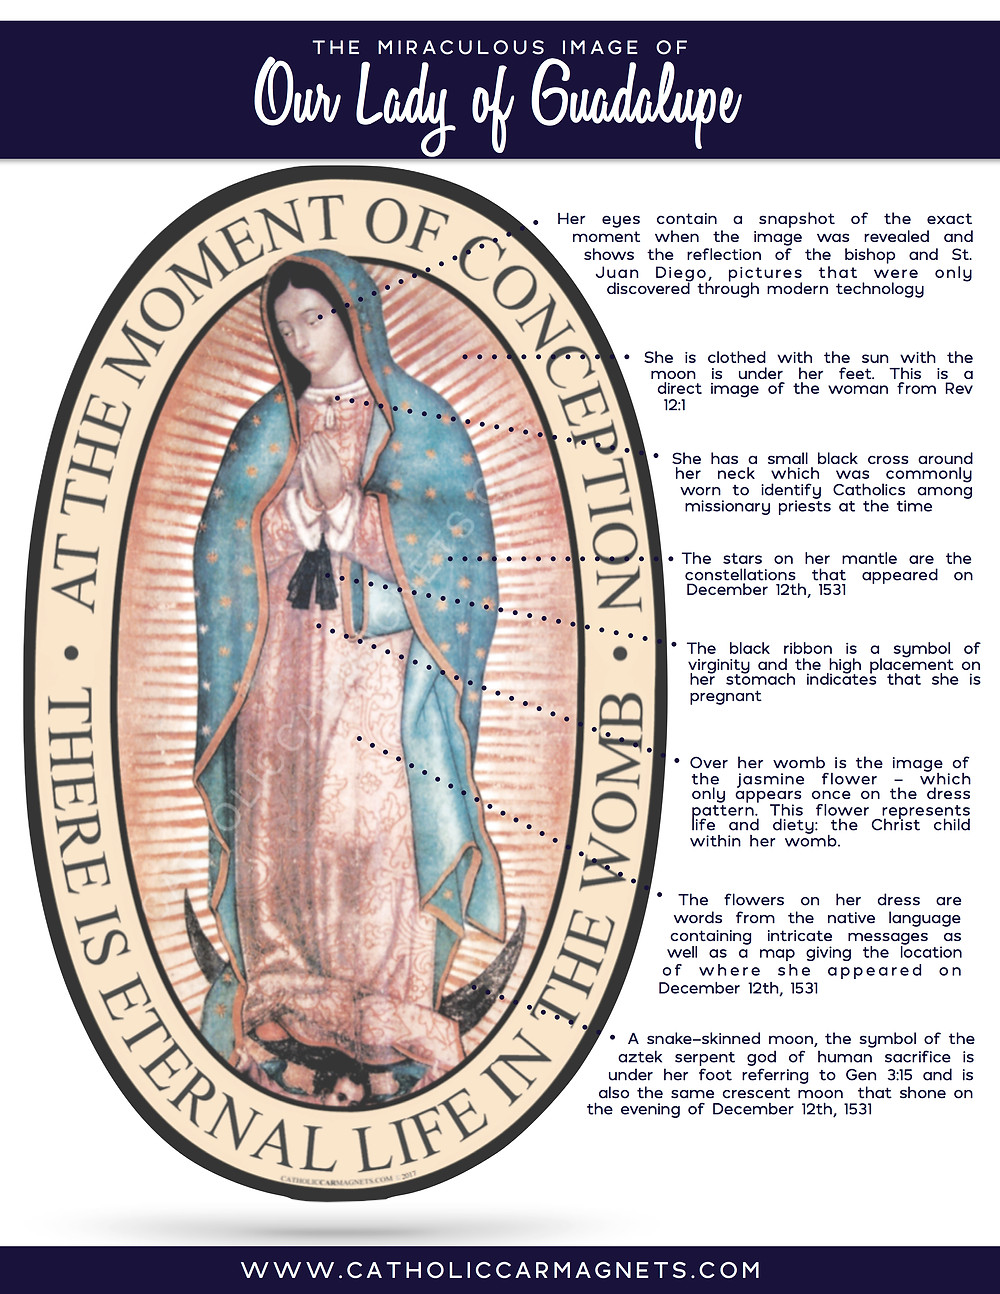 The Our Lady of Guadalupe Catholic Car Magnet explained